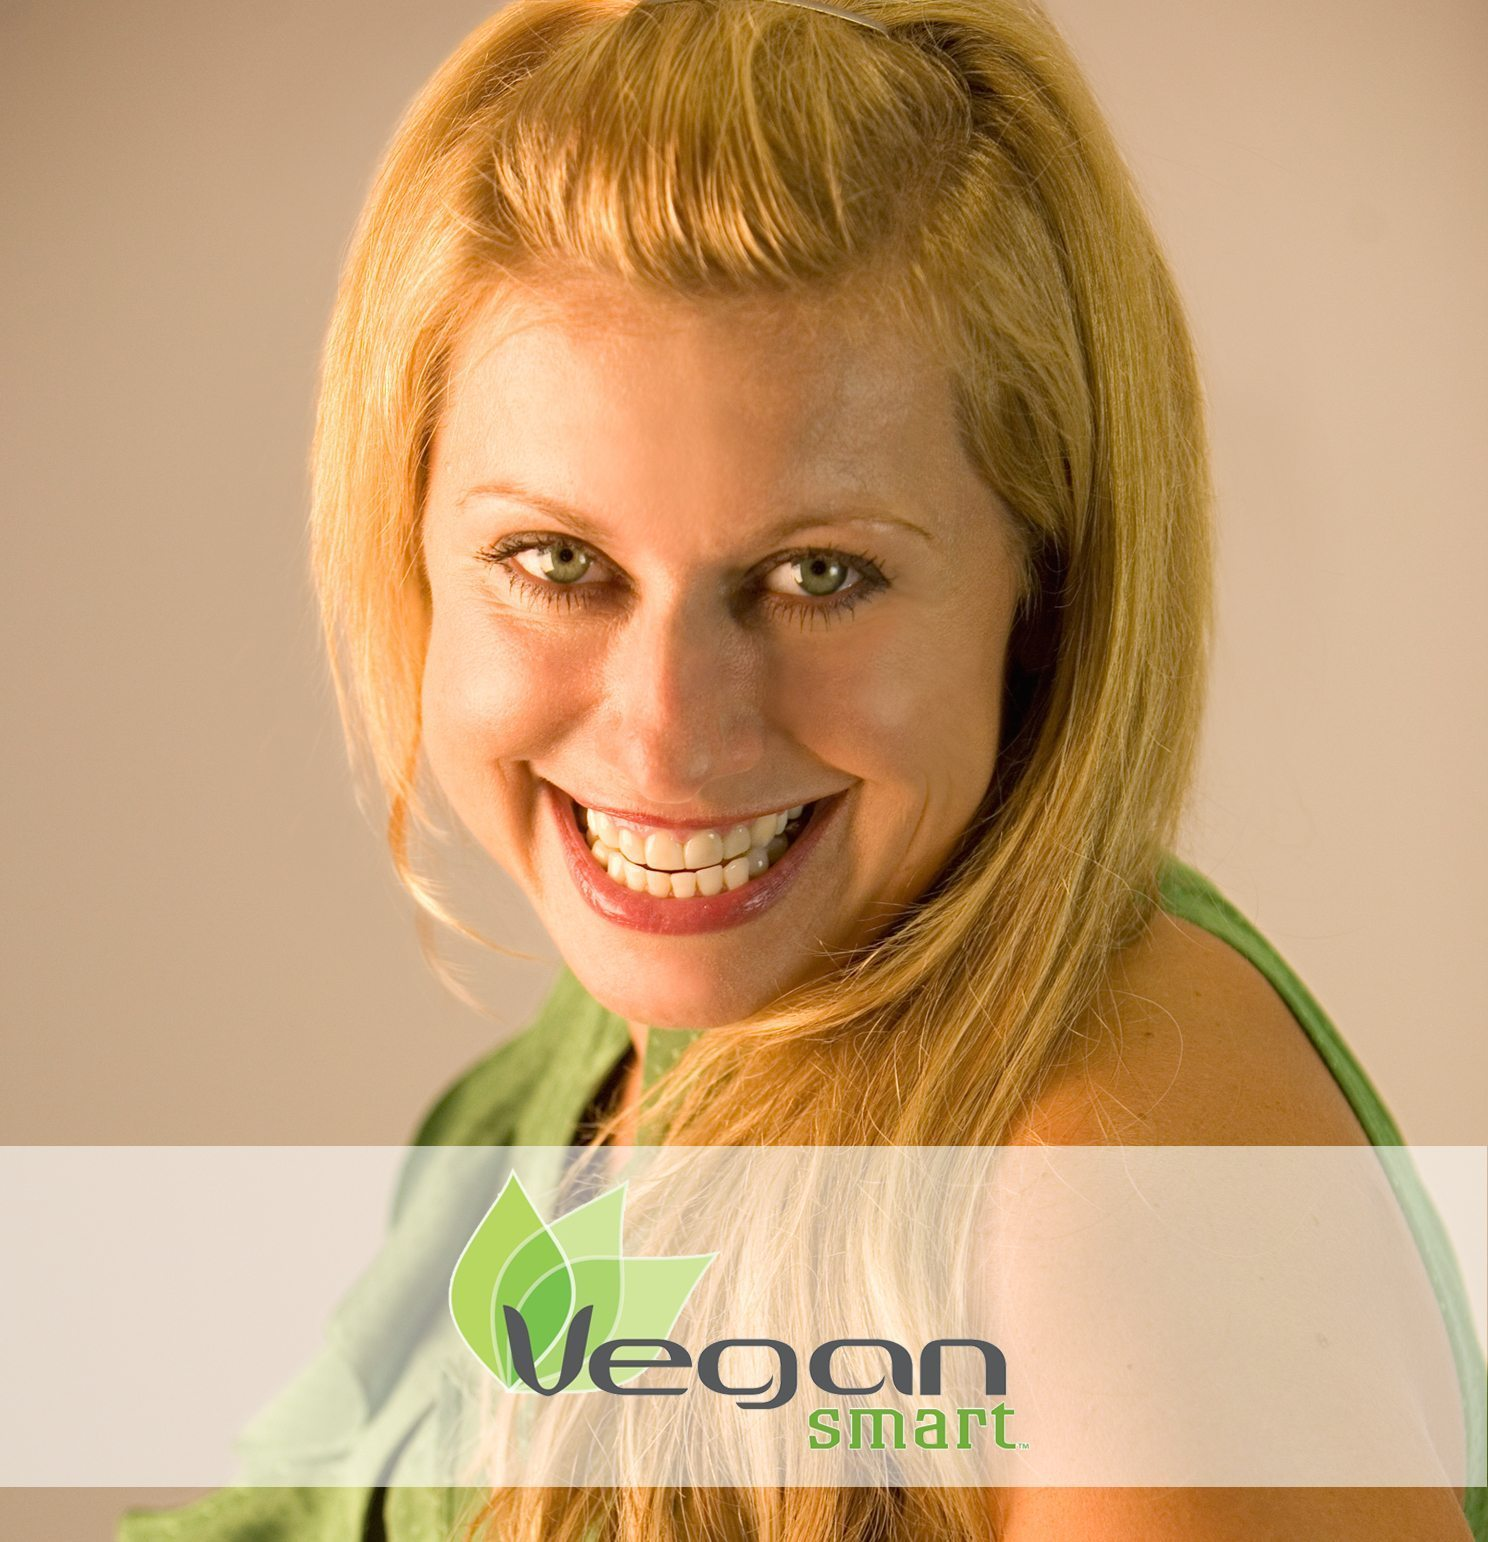 Laura Dellutri Dishes About the 21-Day VeganSmart Challenge